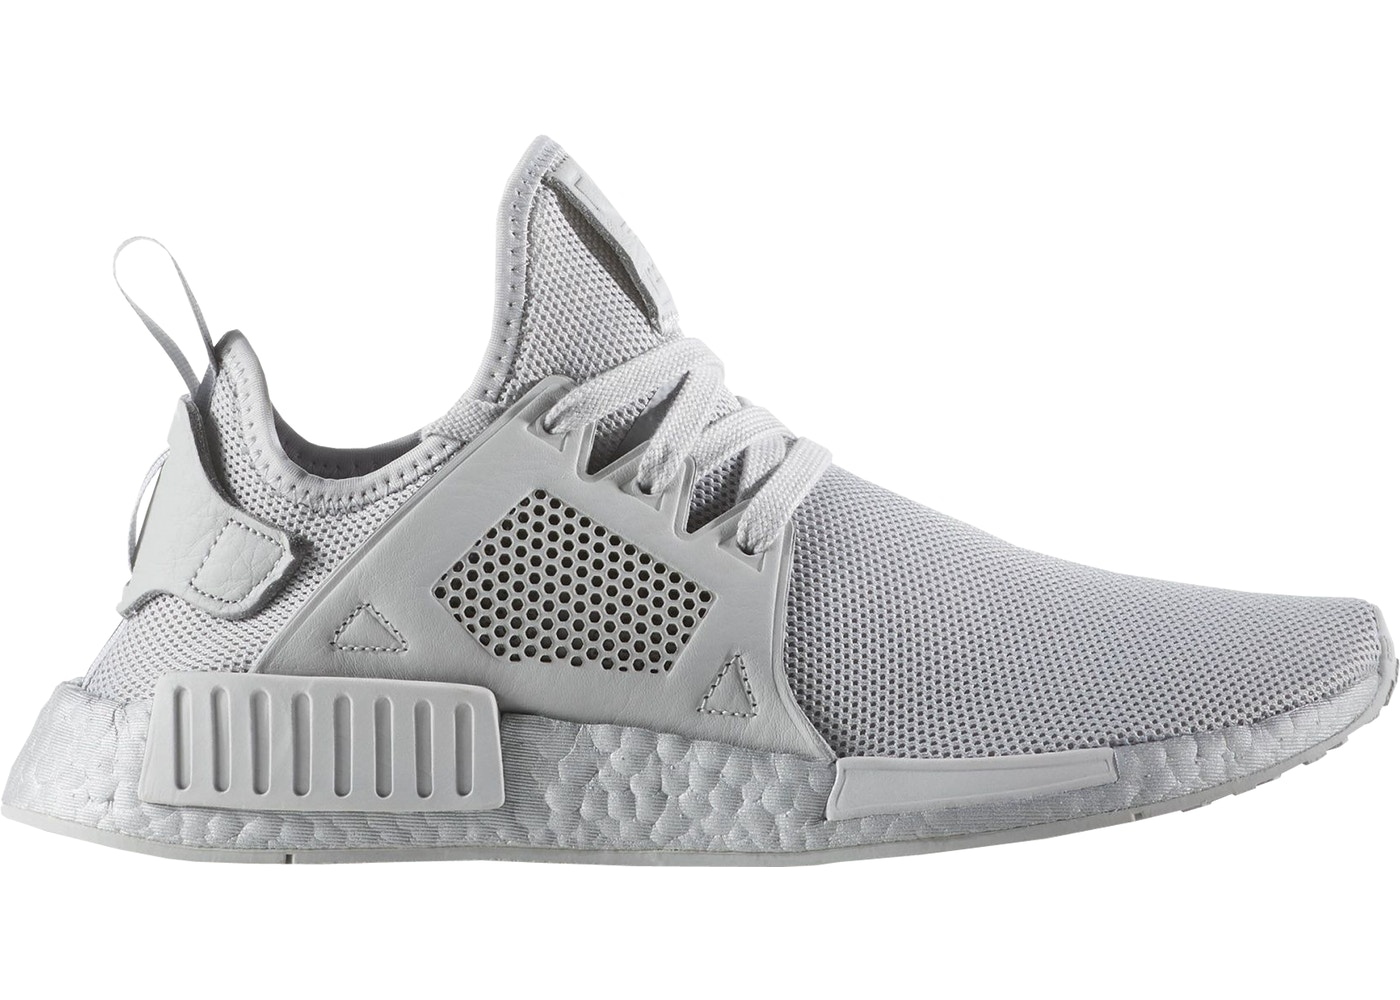 reputable site e5f4c 99780 Buy adidas NMD XR1 Shoes & Deadstock Sneakers